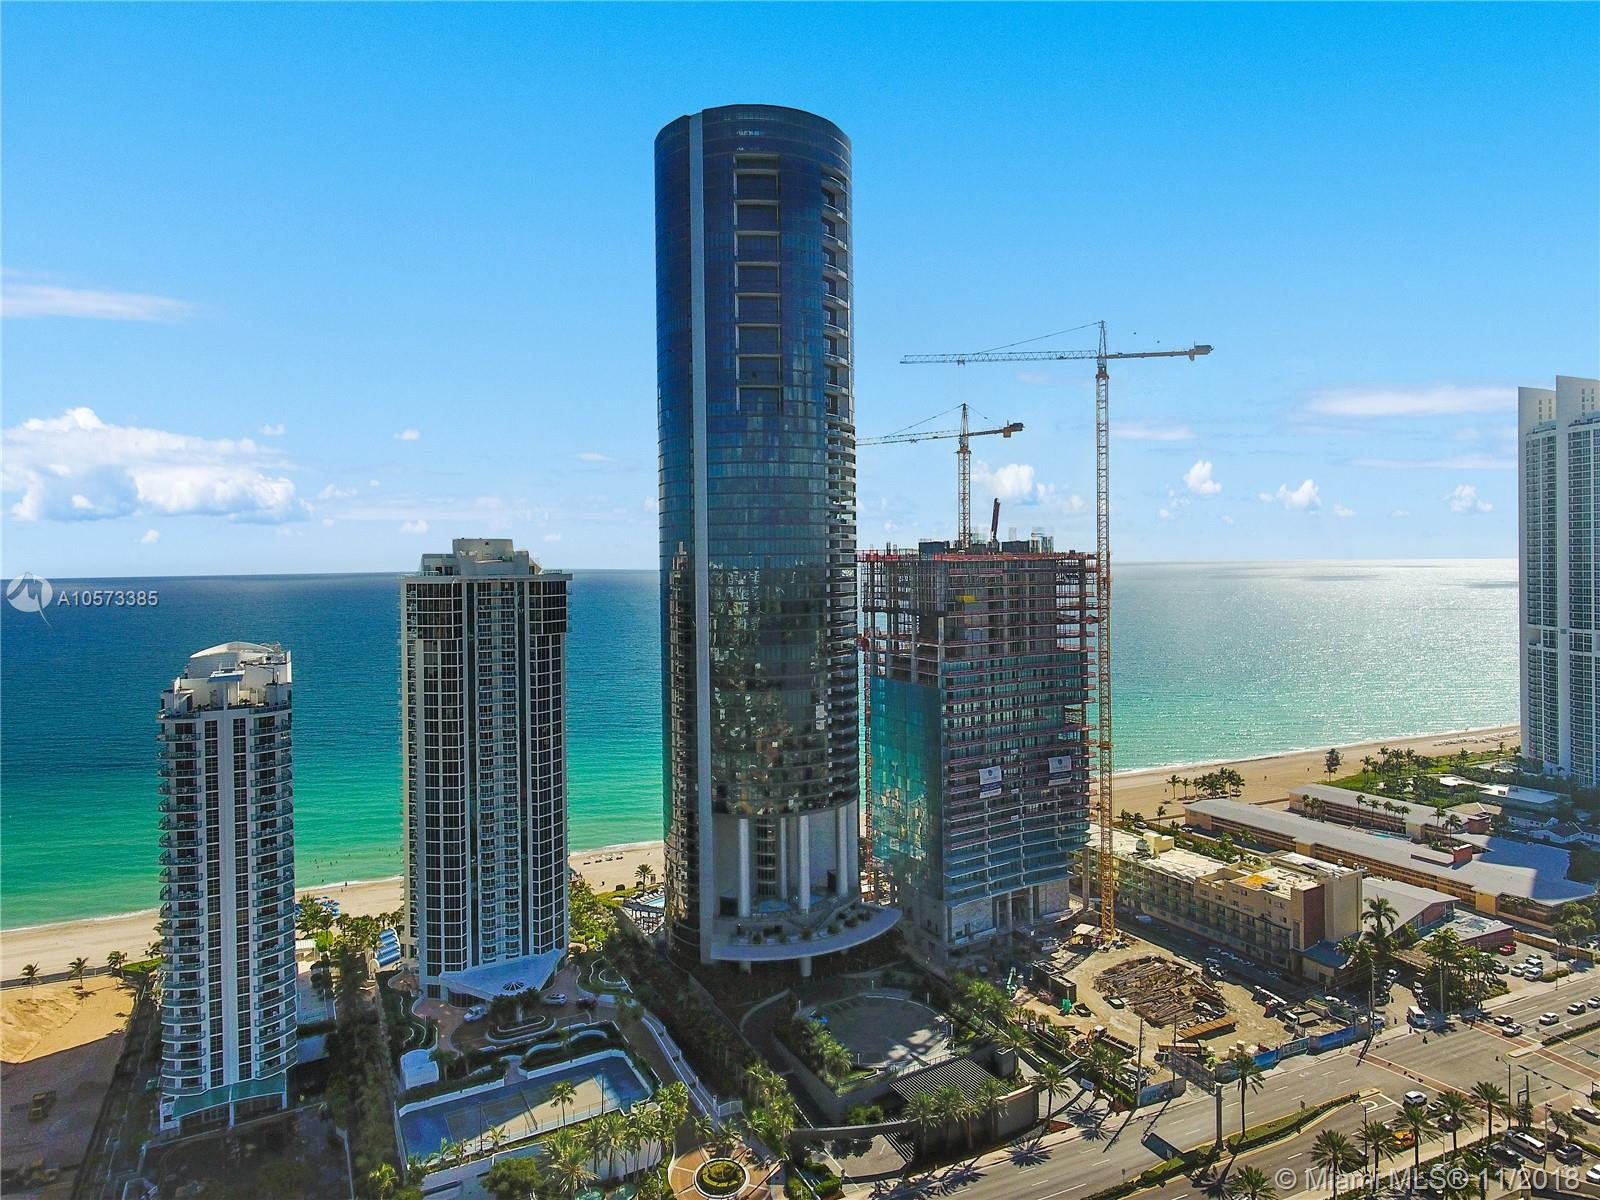 18555 Collins Ave # 5101, Sunny Isles Beach, Florida 33160, 4 Bedrooms Bedrooms, ,5 BathroomsBathrooms,Residential,For Sale,18555 Collins Ave # 5101,A10573385